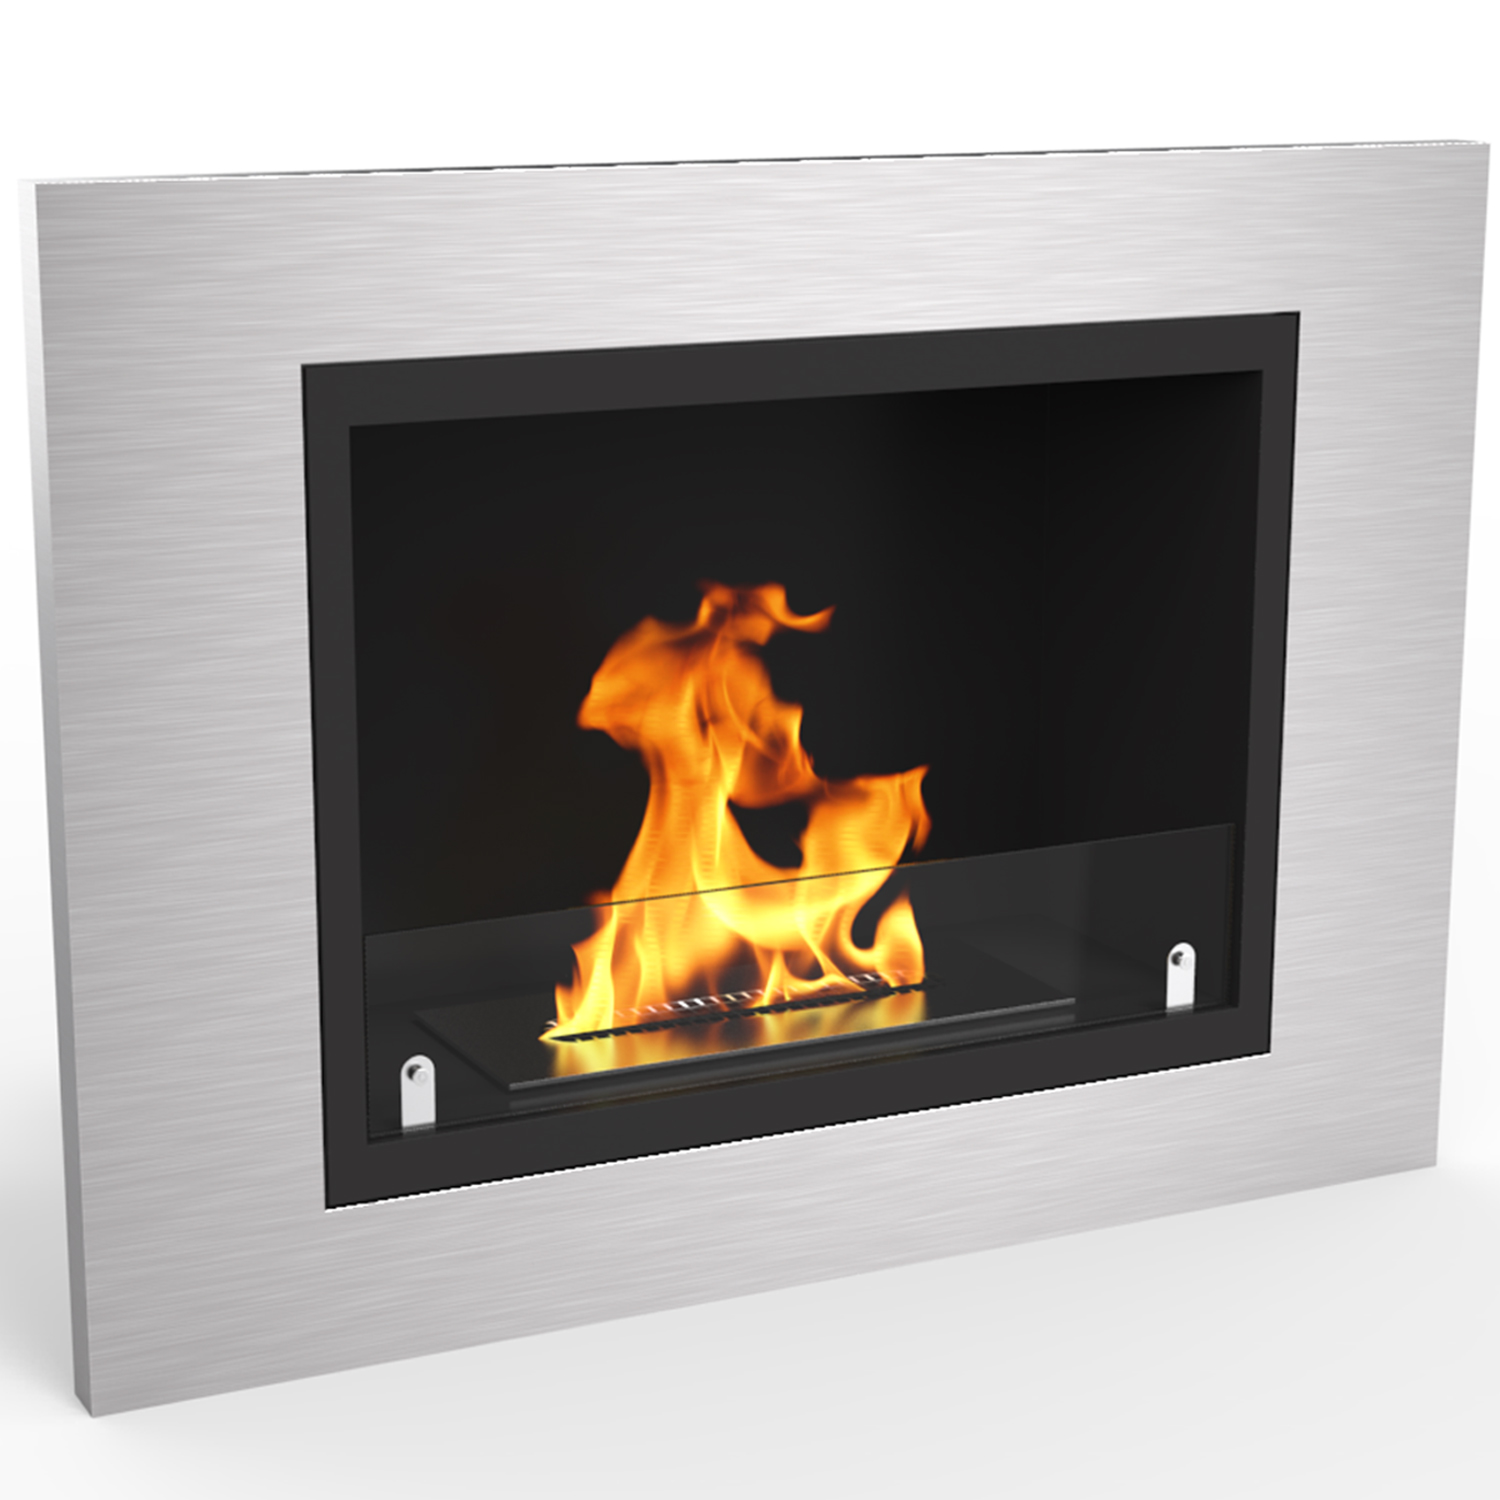 The Venice Wall Mounted Ethanol Fireplace creates a charisma that is completely irresistible to watch. The fascinating dancing flames on a wall from the Venice fireplace create a statement to any room.